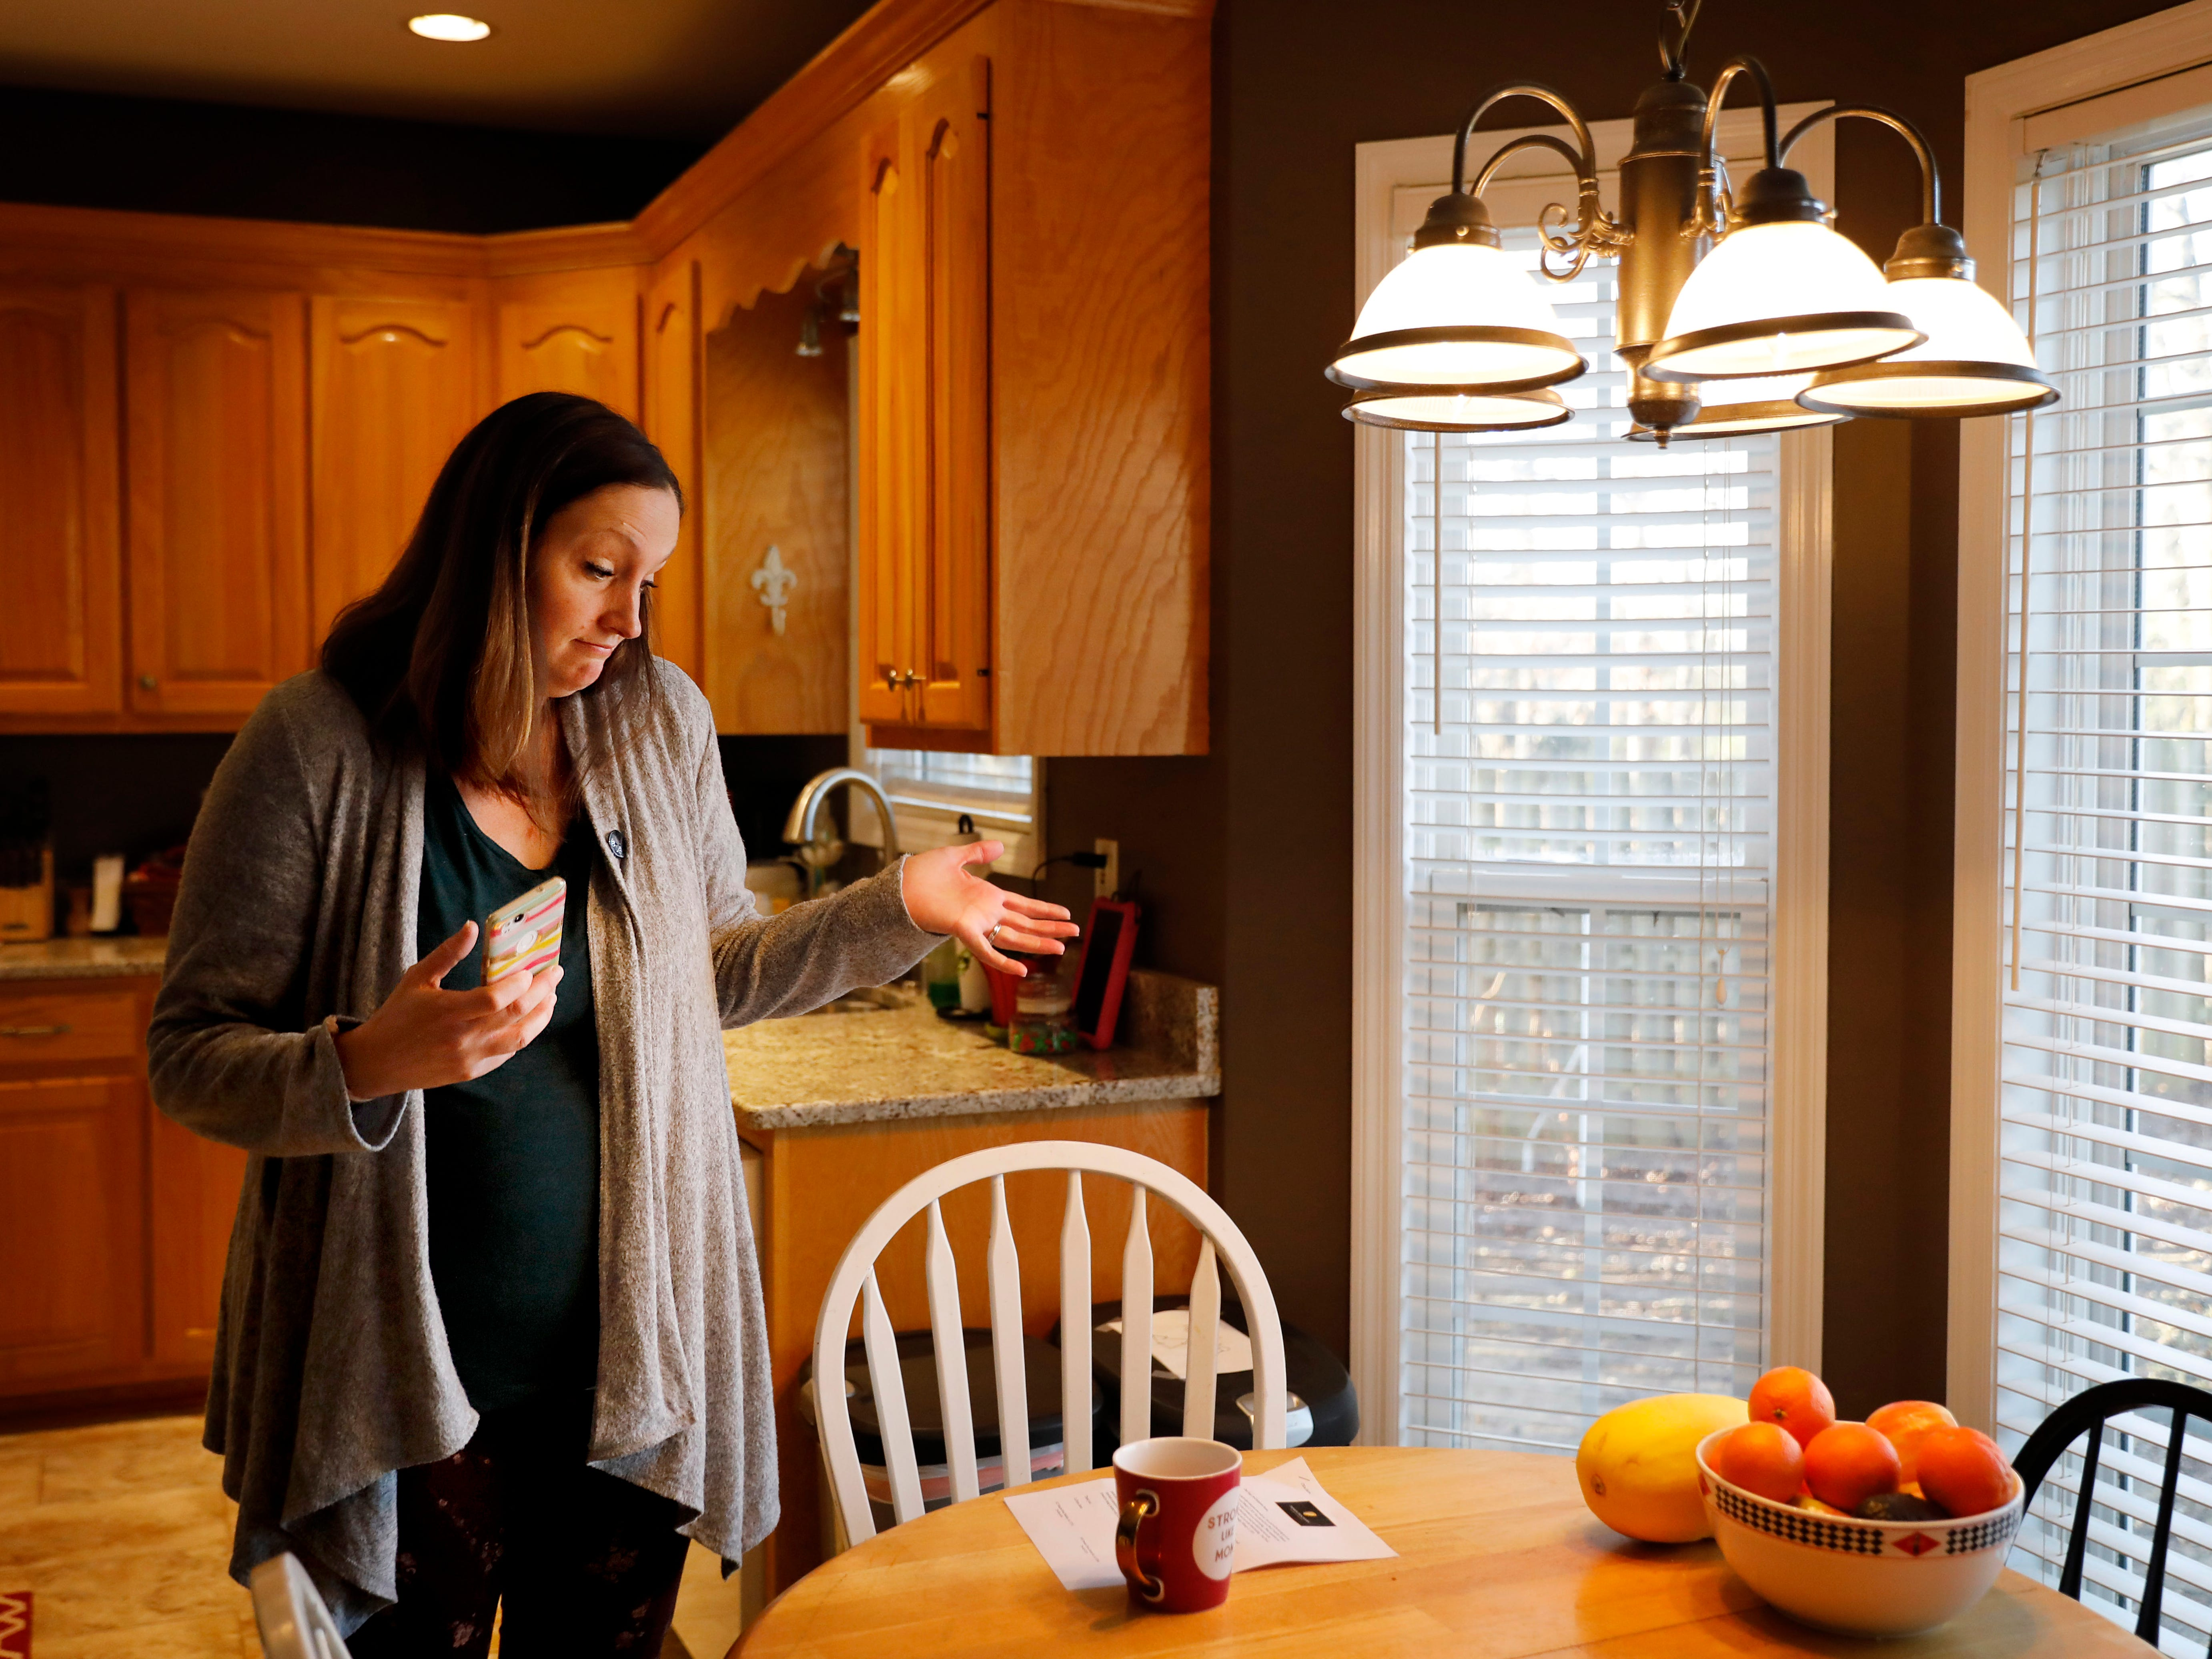 Katie Barron gestures while looking at a pay increase notice for her children's day care, in her home in Madison, Ala., Jan. 9, 2019. Barron's husband is a National Weather Service meteorologist forced to work without pay during the shutdown because his job is classified as essential. They've put off home and car maintenance, but the $450-a-week bill for day care still has to be paid, as do the mortgage and utility bills.